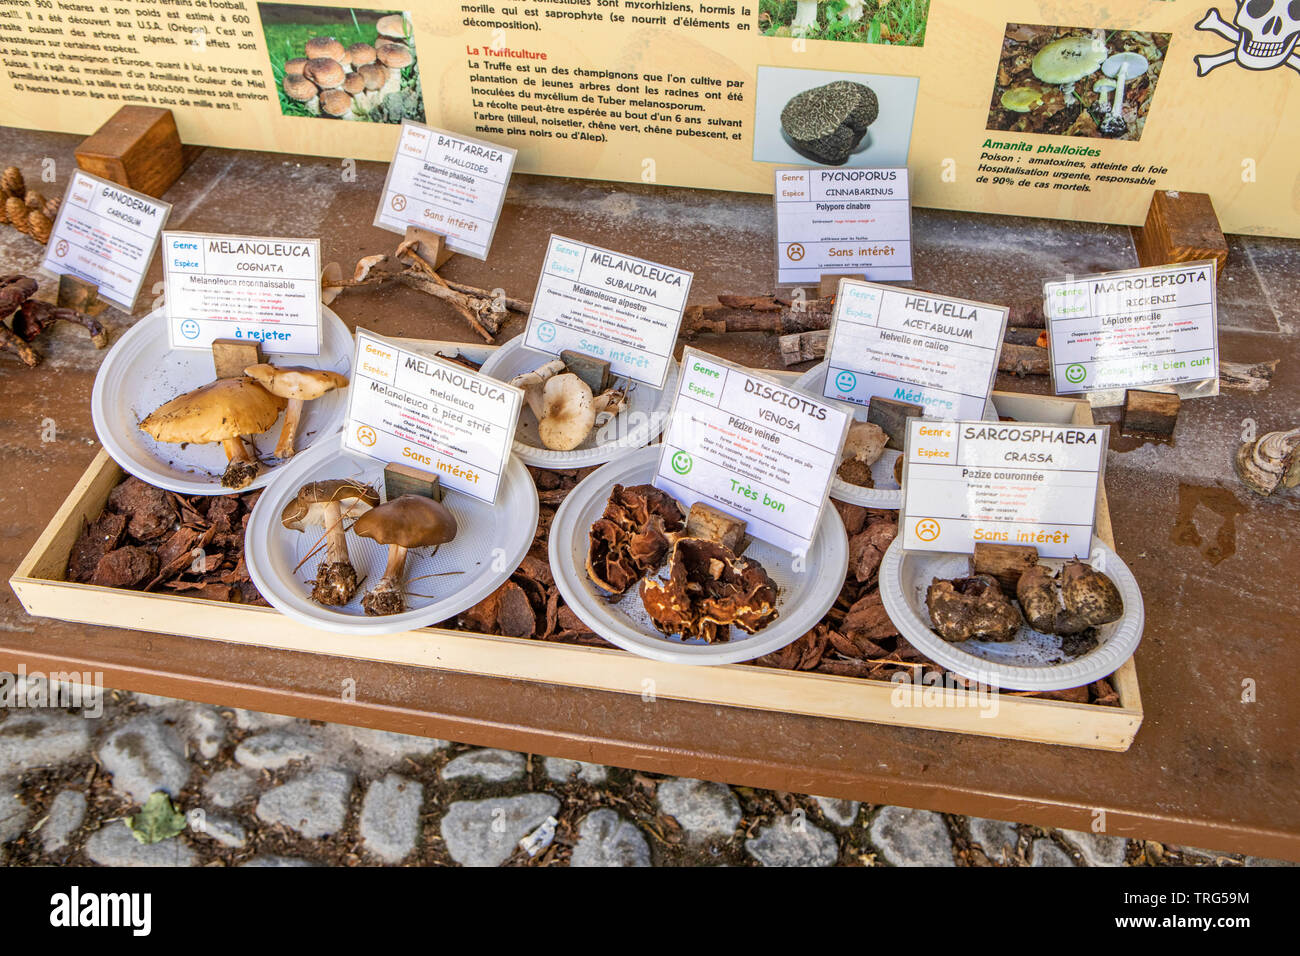 Mushrooms of the South of France - Stock Image